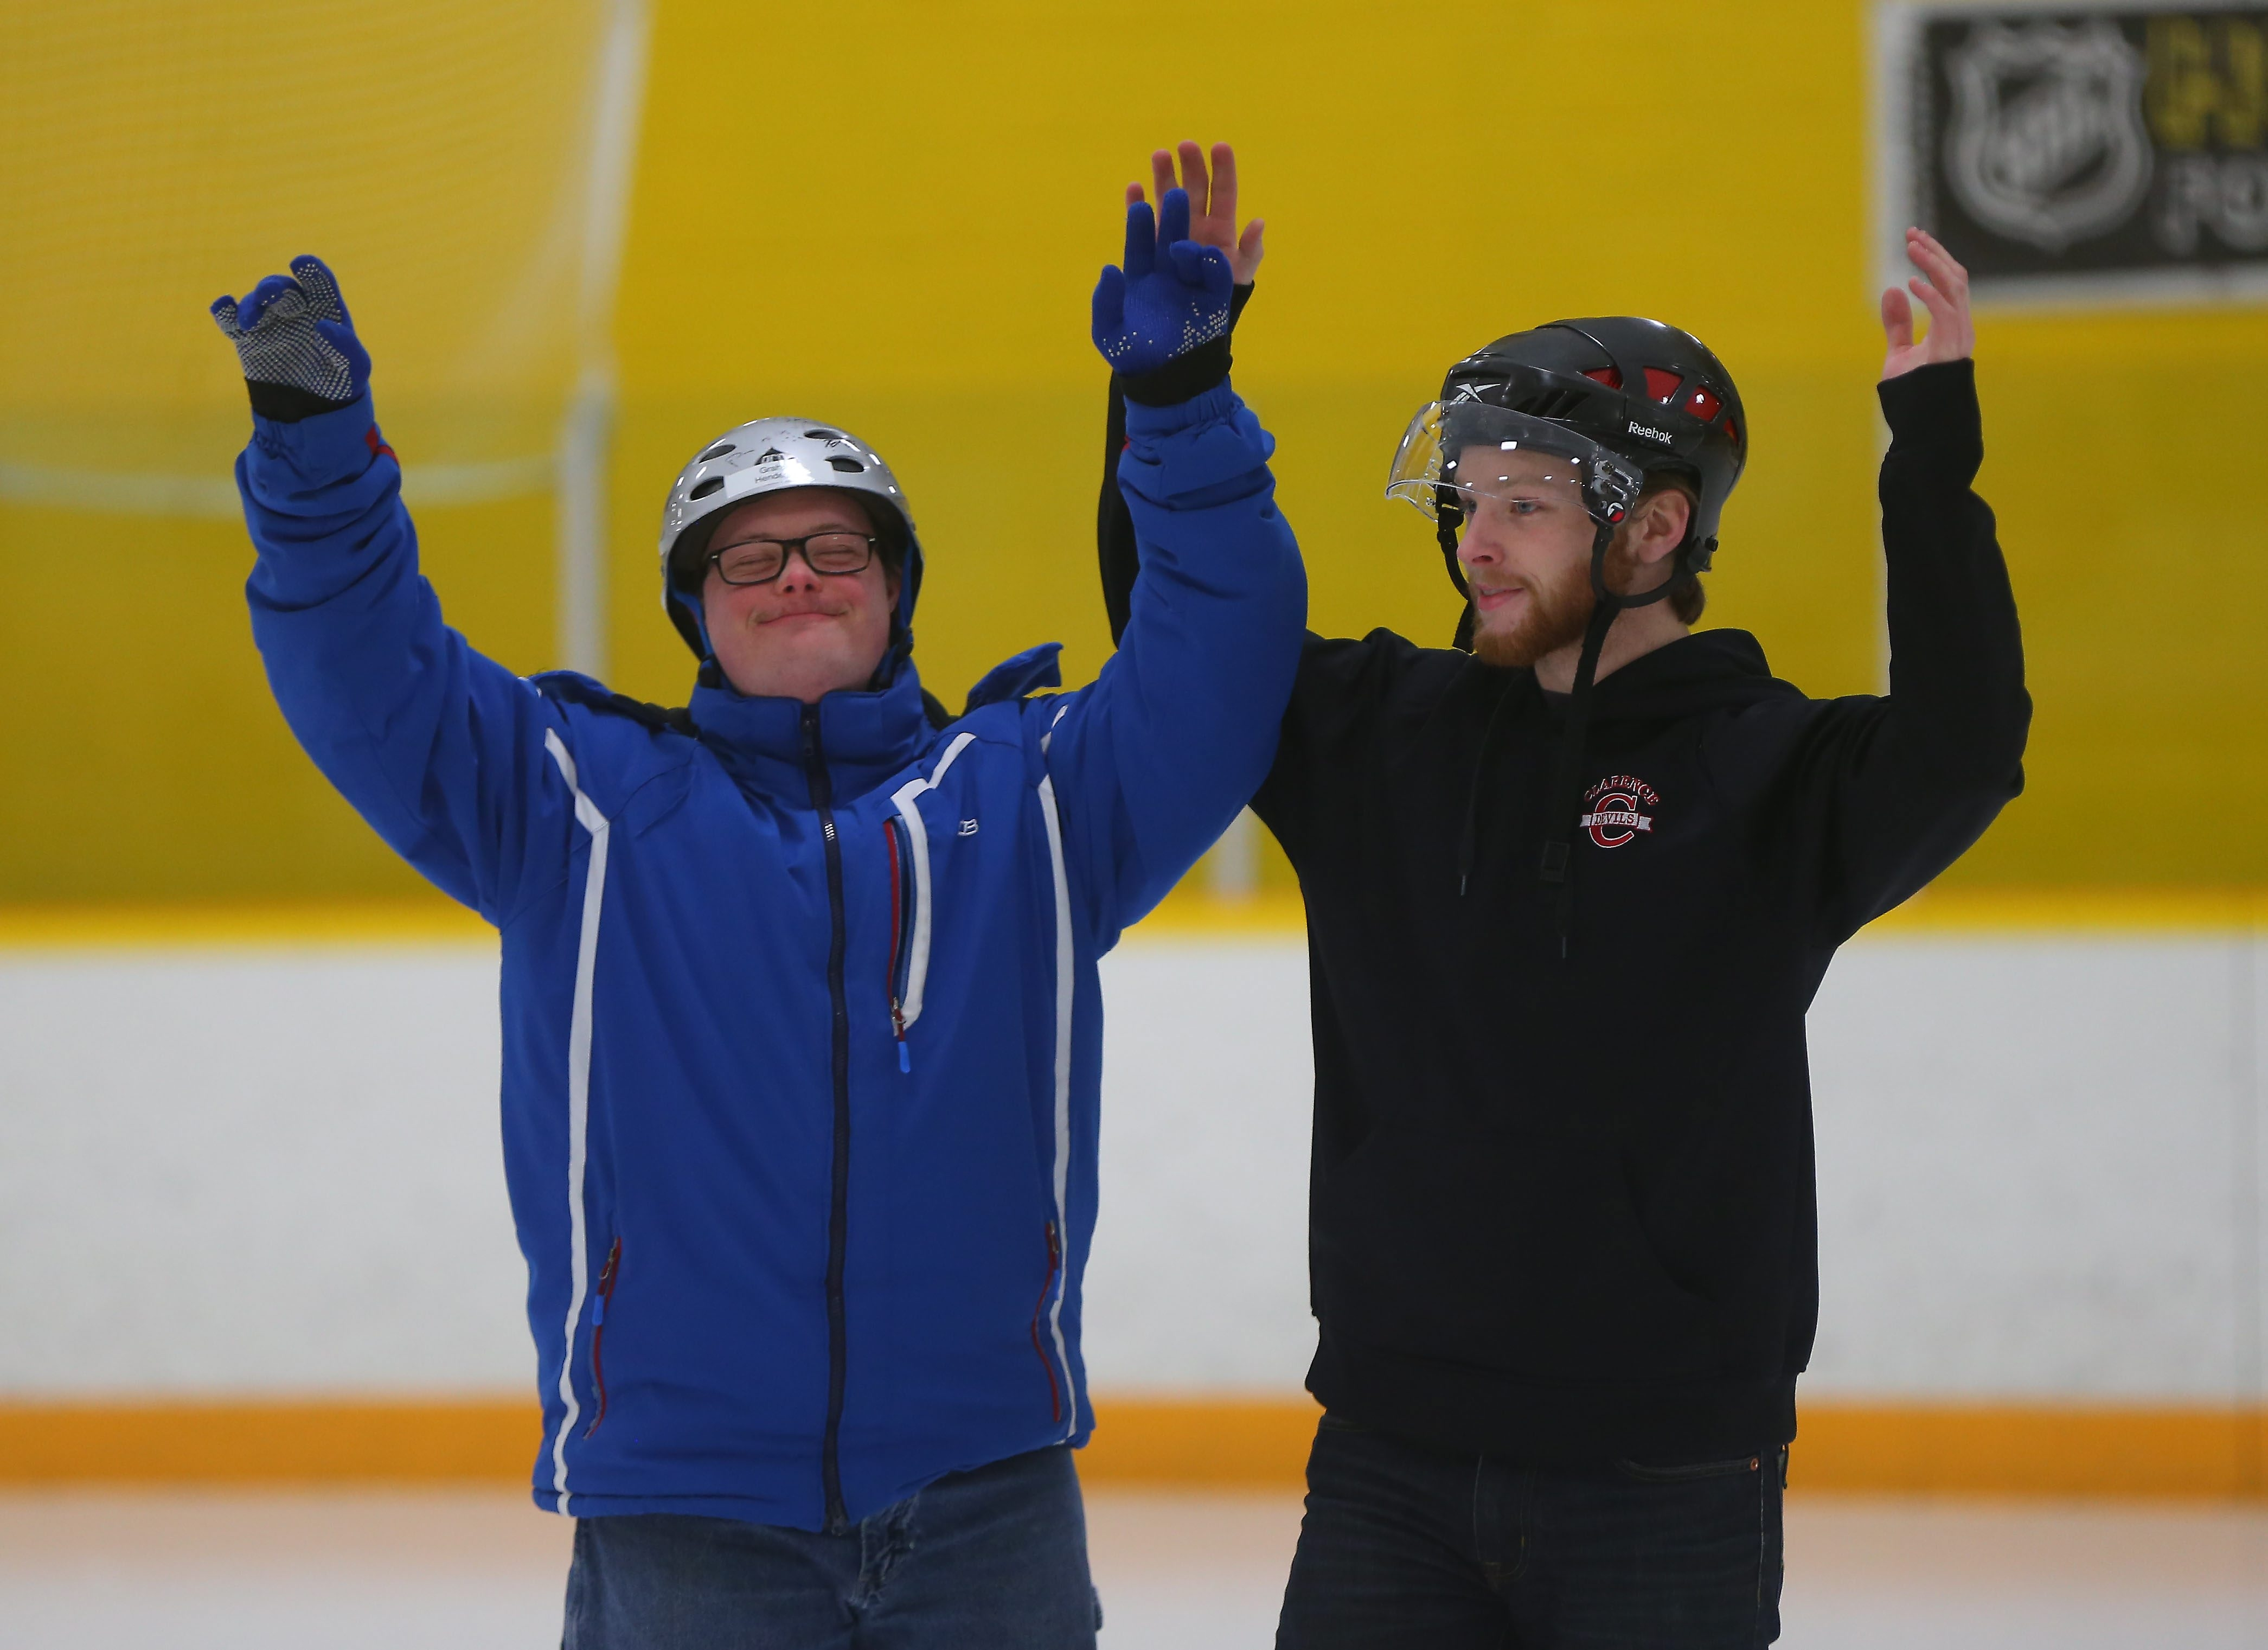 """Graham Henderson, left, and volunteer Brian Manley practice their bow at Riverside Rink in Buffalo on Tuesday. Henderson will be skating with Manley to the tune of Bruno Mars' """"Count on Me"""" at the ice show Sunday in First Niagara Center."""